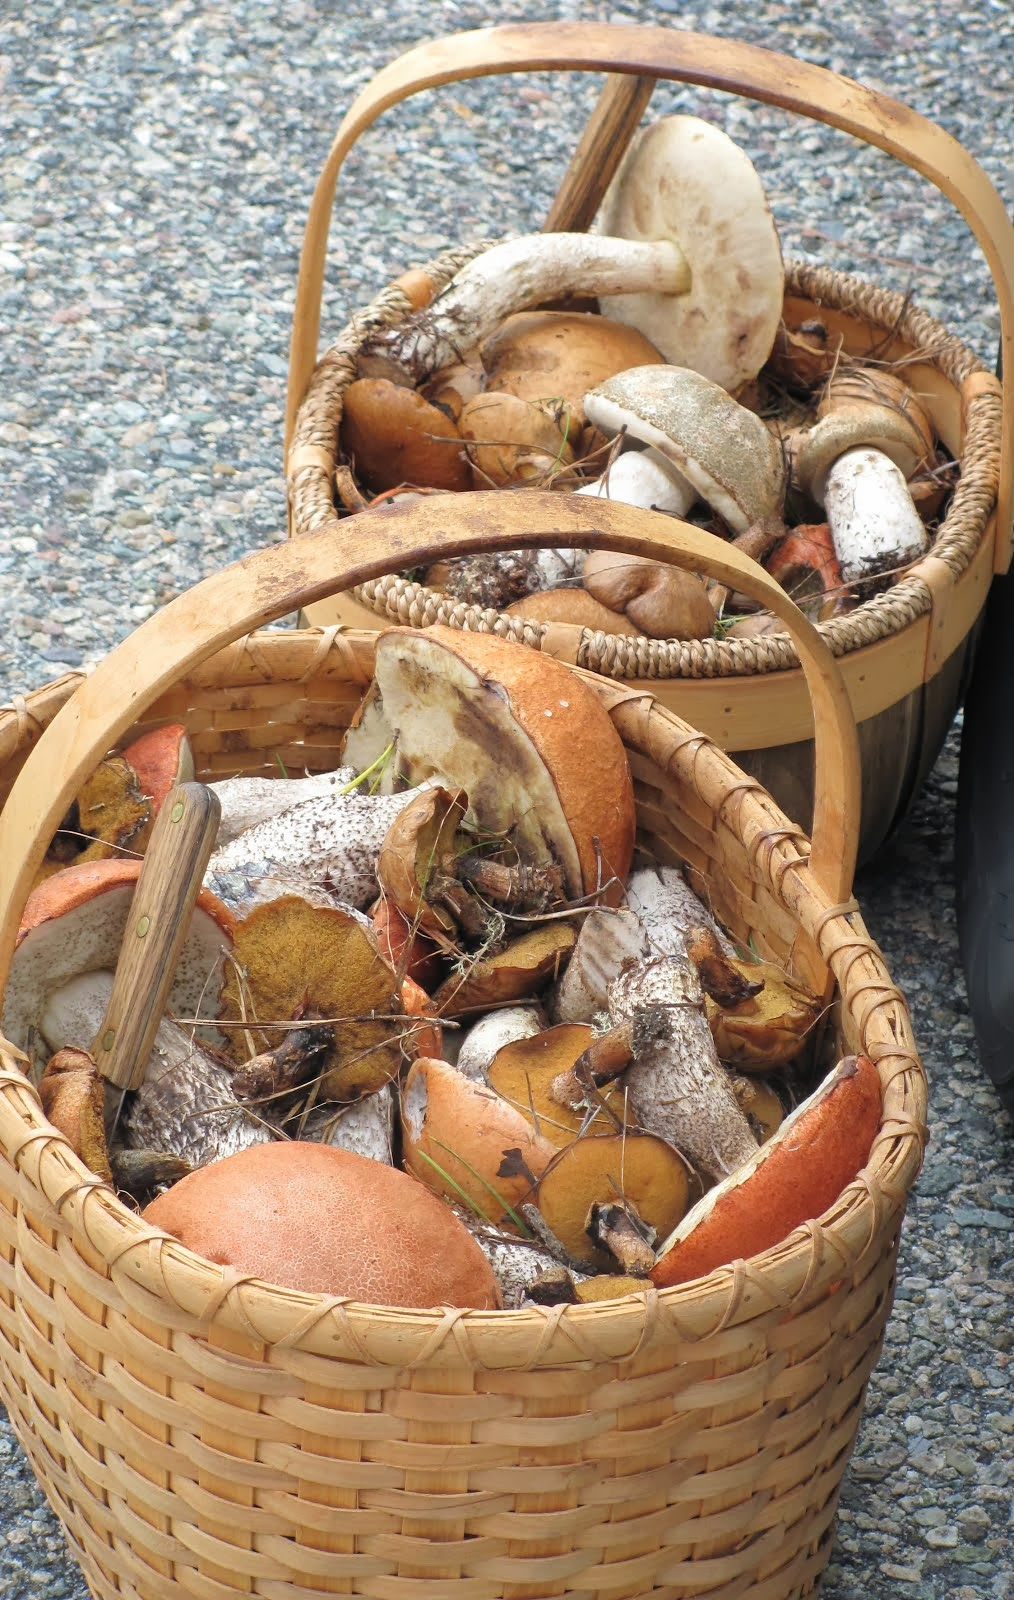 Find Wild Mushrooms in the Province Lands